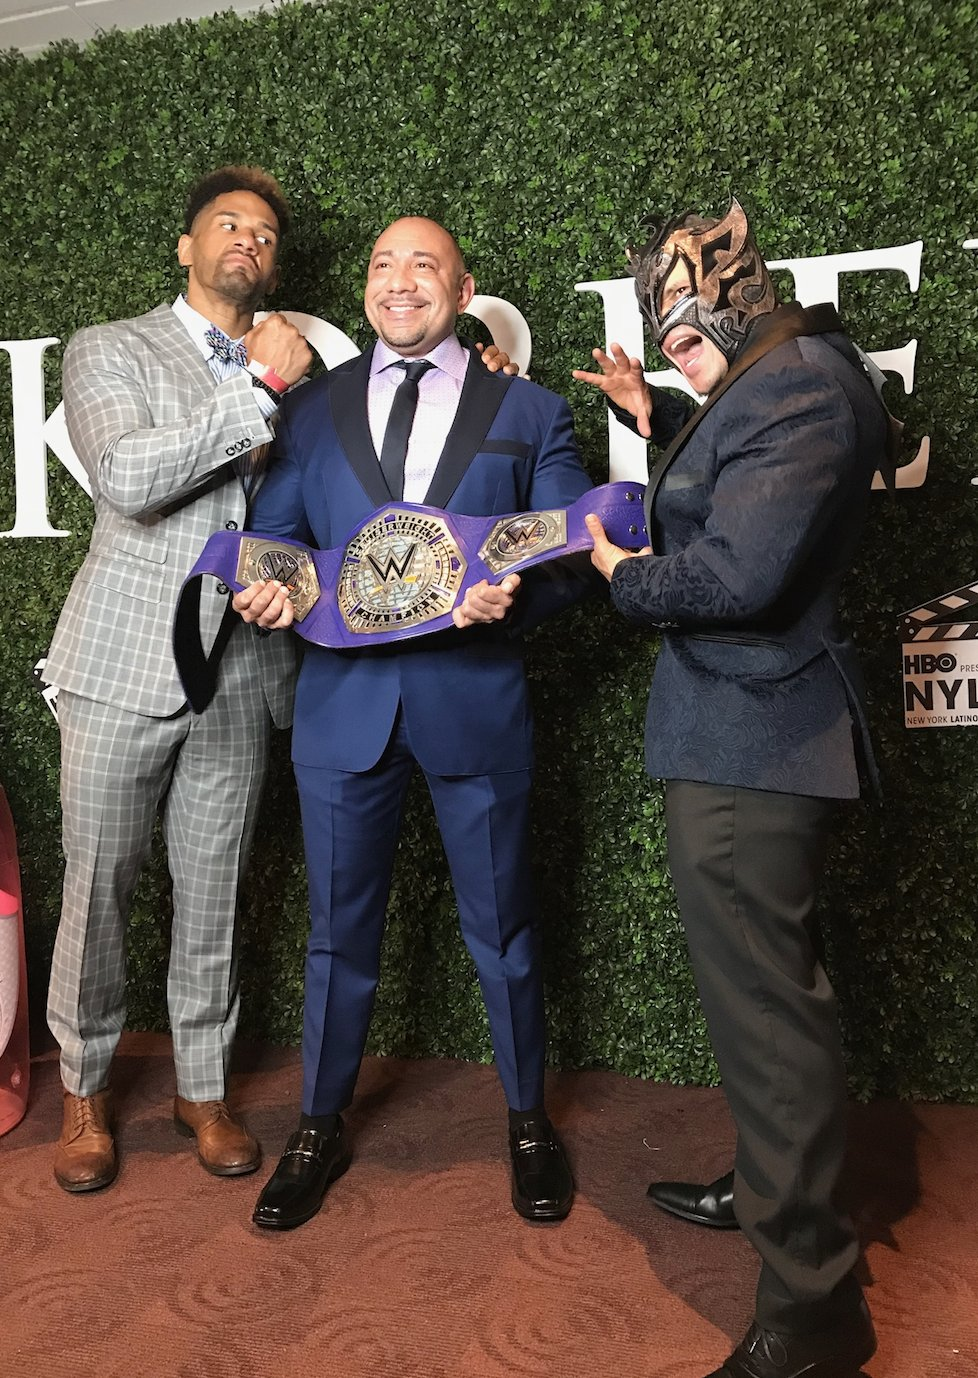 ".@DarrenYoungWWE & @KalistoWWE hit the #NYLFF red carpet for the showing of ""Saturday Church!"" https://t.co/OXvY9W1Gvq"